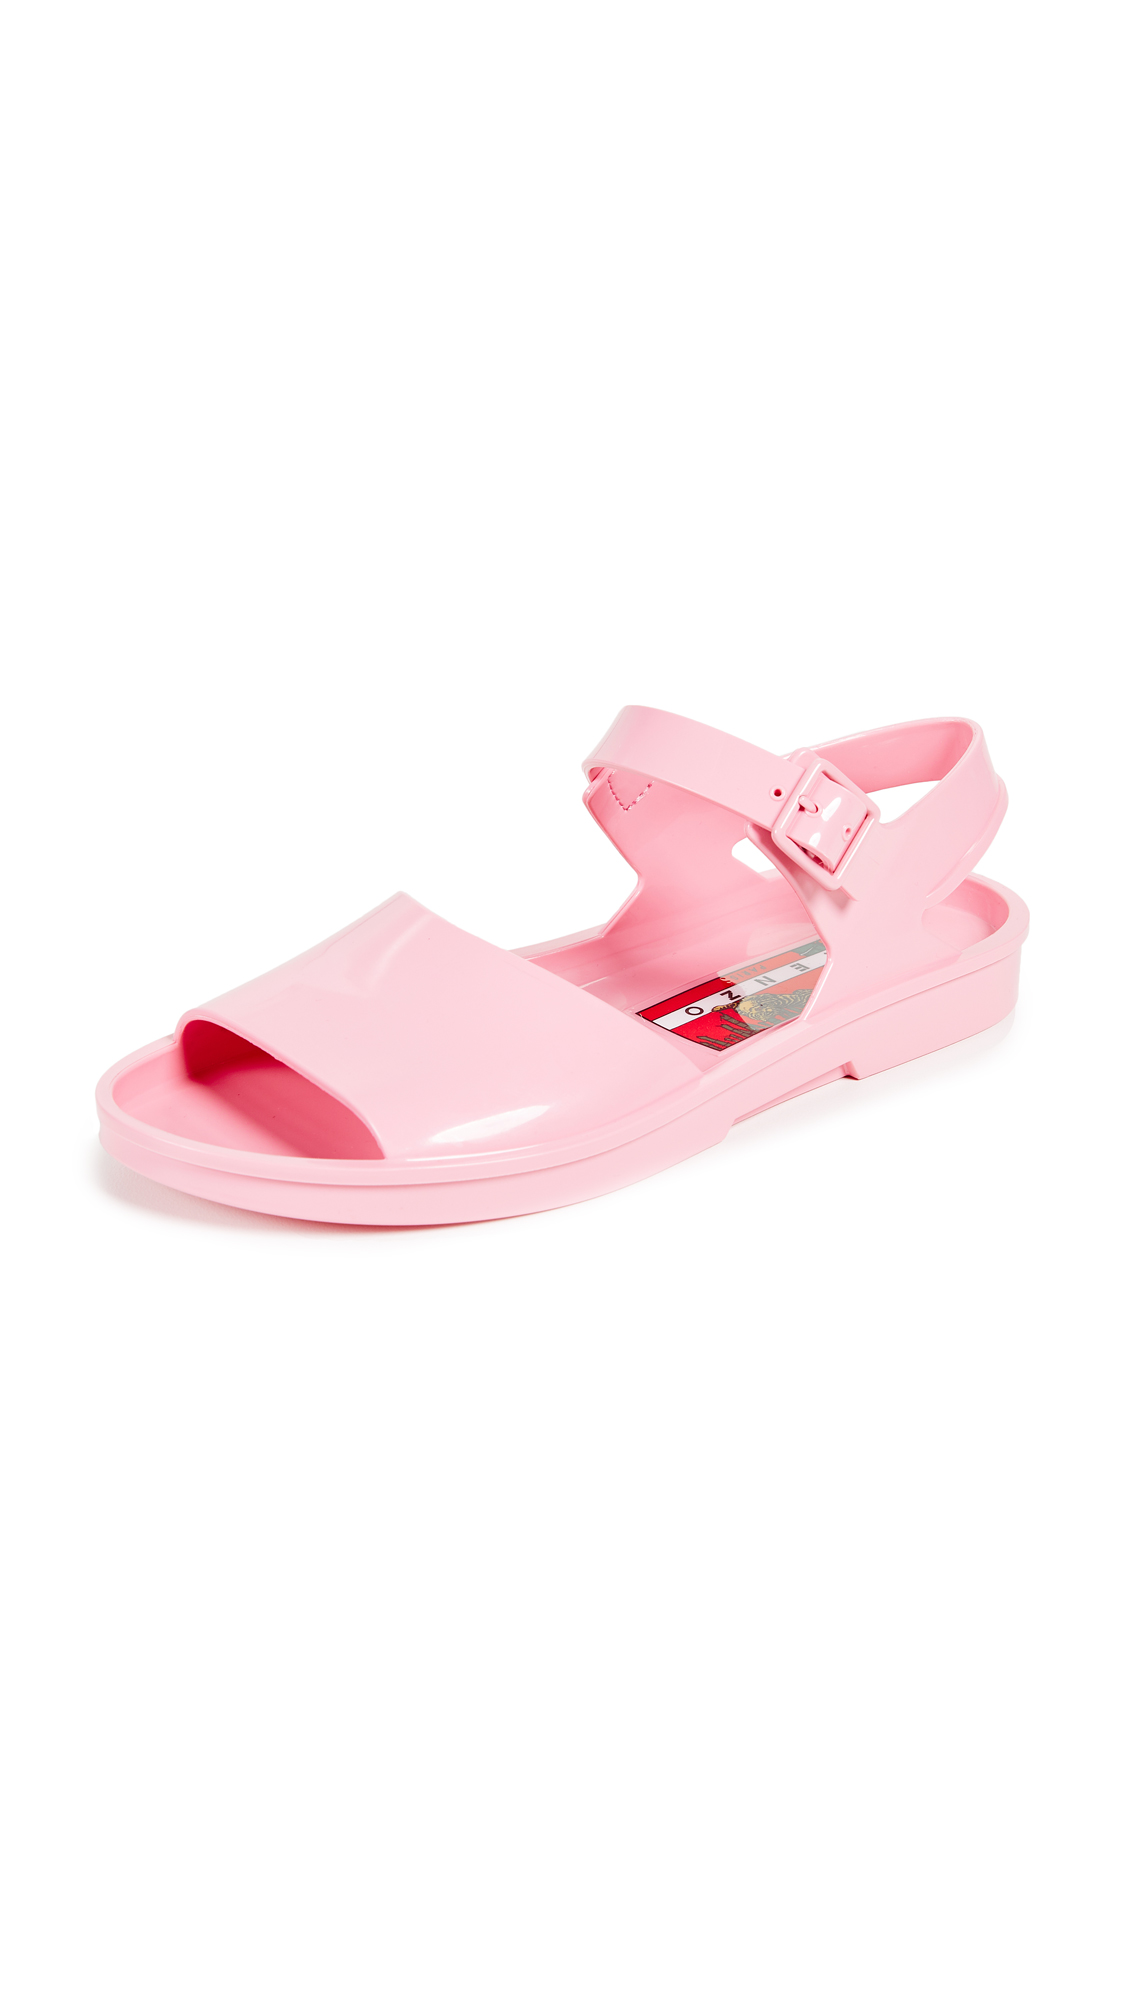 CHIBA JELLY SANDALS